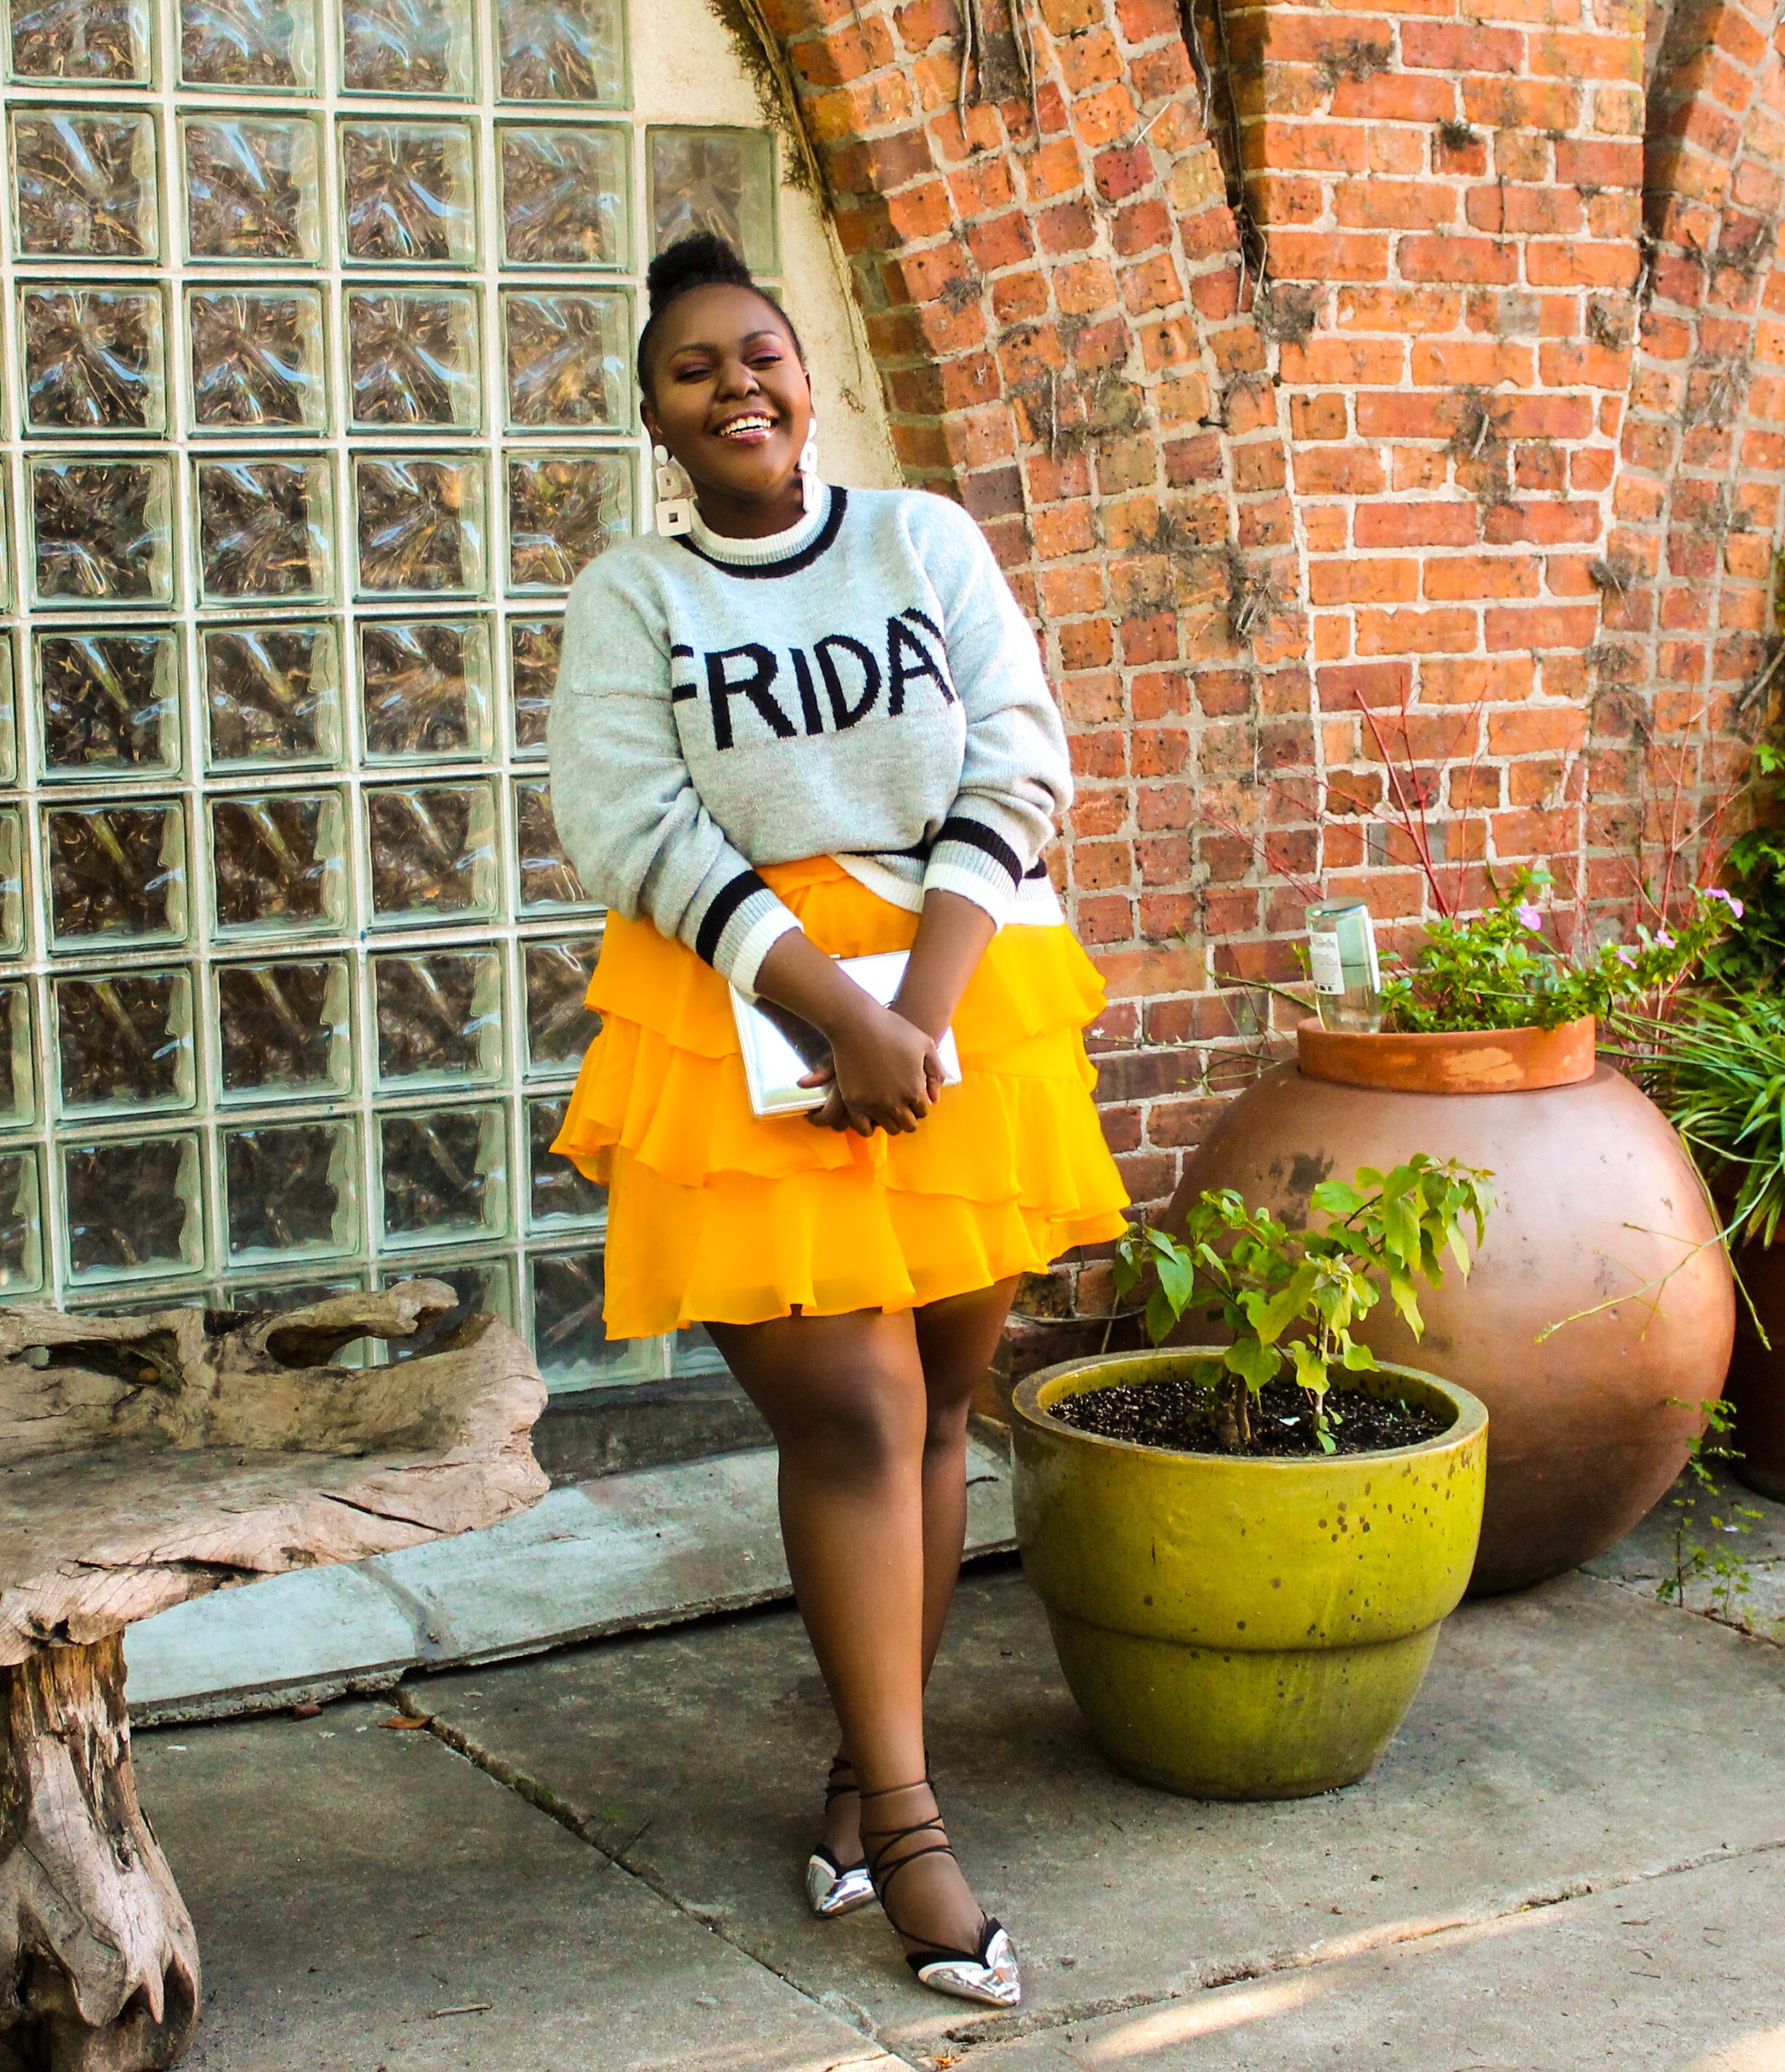 preppy plus size fashion blogs 2017, beautiful curvy girls, how to fill the eye brow of a dark skin, beautiful plus size dark skin girls, plus size black bloggers, clothes for curvy girls, curvy girl fashion clothing, plus blog, plus size fashion tips, plus size women blog, curvy women fashion, plus blog, curvy girl fashion blog, style plus curves, plus size fashion instagram, curvy girl blog, bbw blog, plus size street fashion, plus size beauty blog, plus size fashion ideas, curvy girl summer outfits, plus size fashion magazine, plus fashion bloggers, zara, Rosie the riveter shirt; Emilia embroidered beaded clutch; Vince Camuto heels; Lula shell drop earrings; Aldo Galigossi sunnies, tenge collection, codexmode, zara, asos